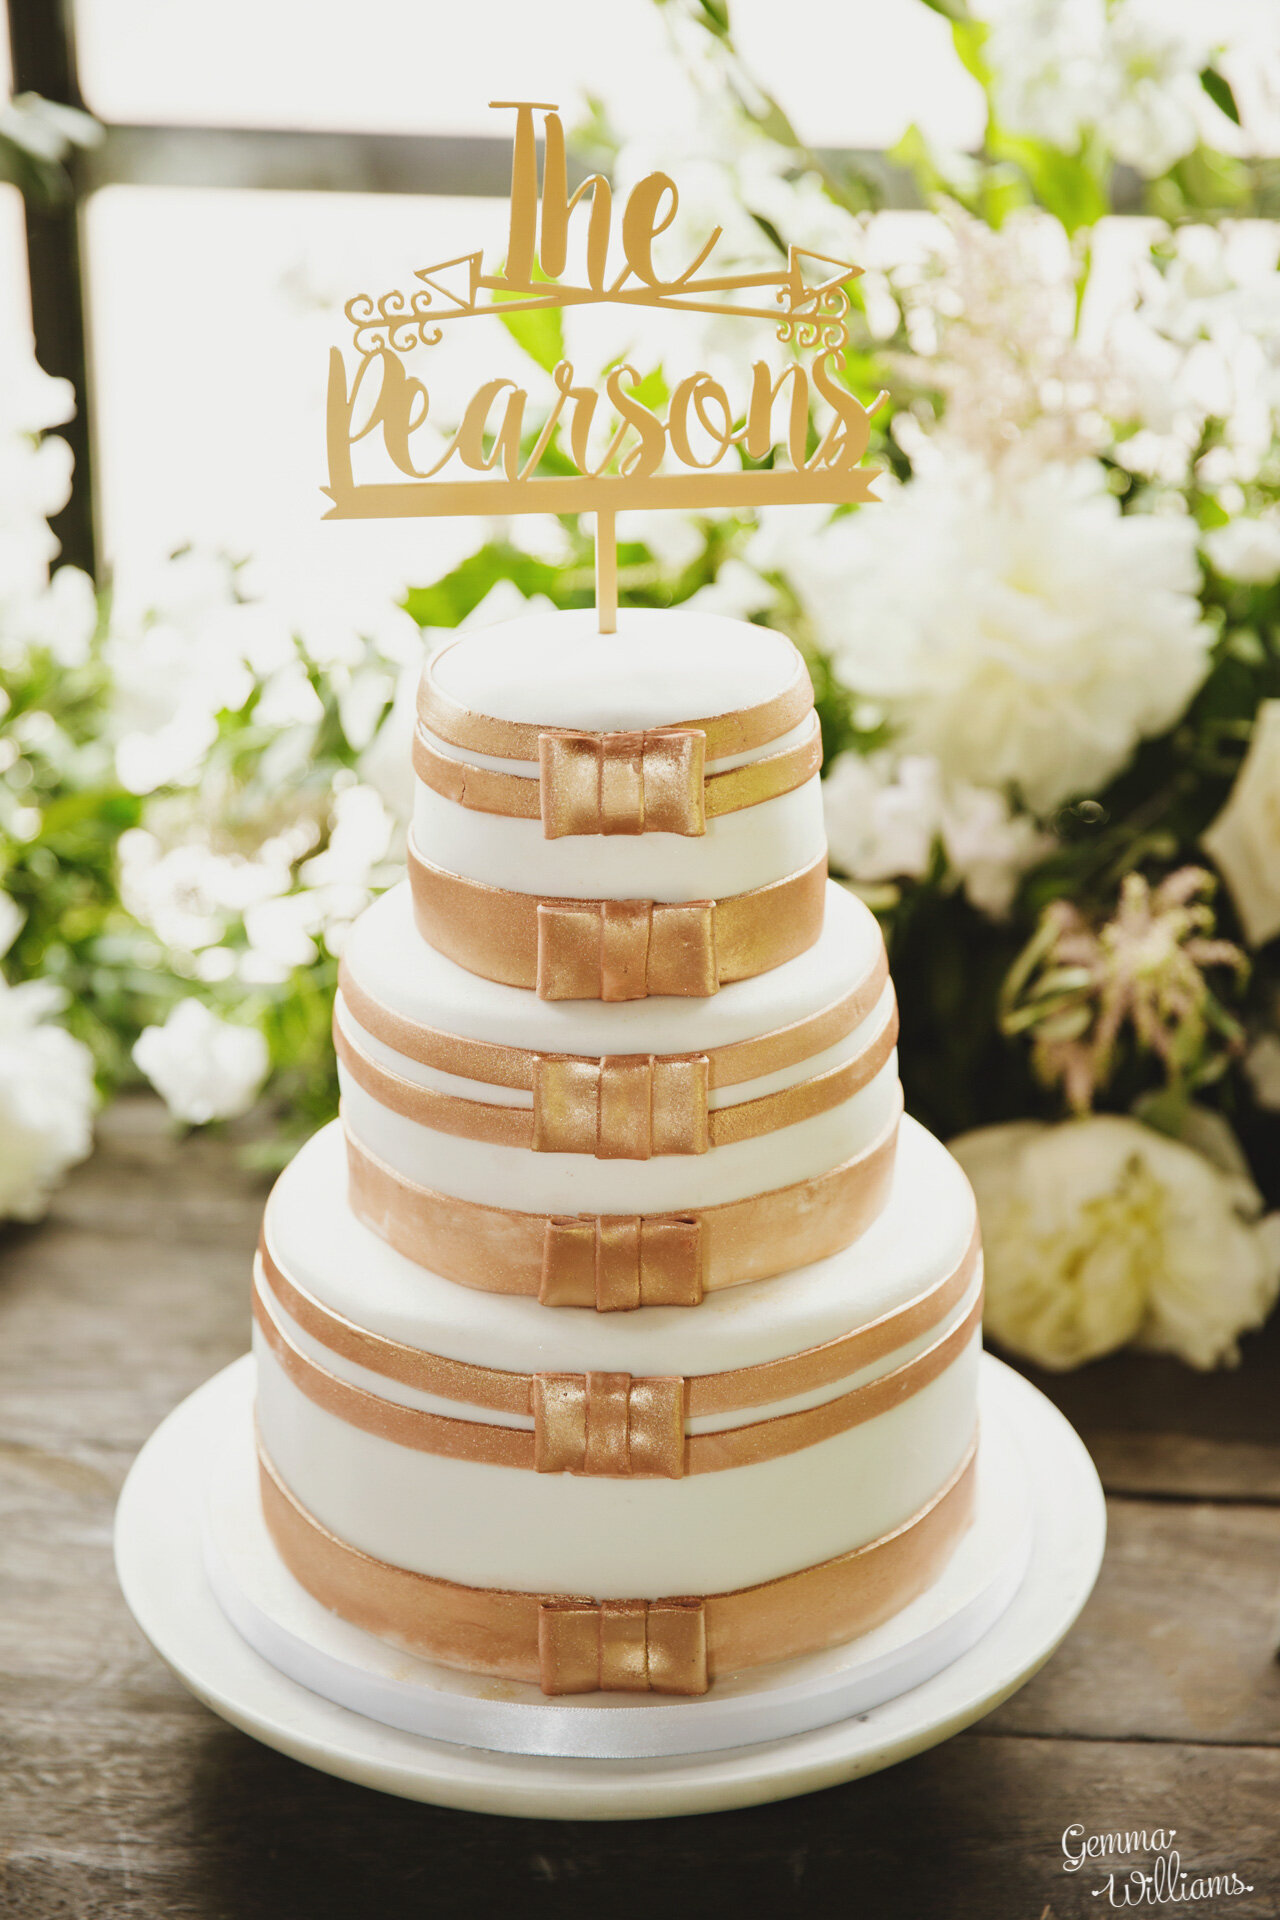 Recommended Wedding Cakes In Herefordshire Herefordshire Wedding Blog